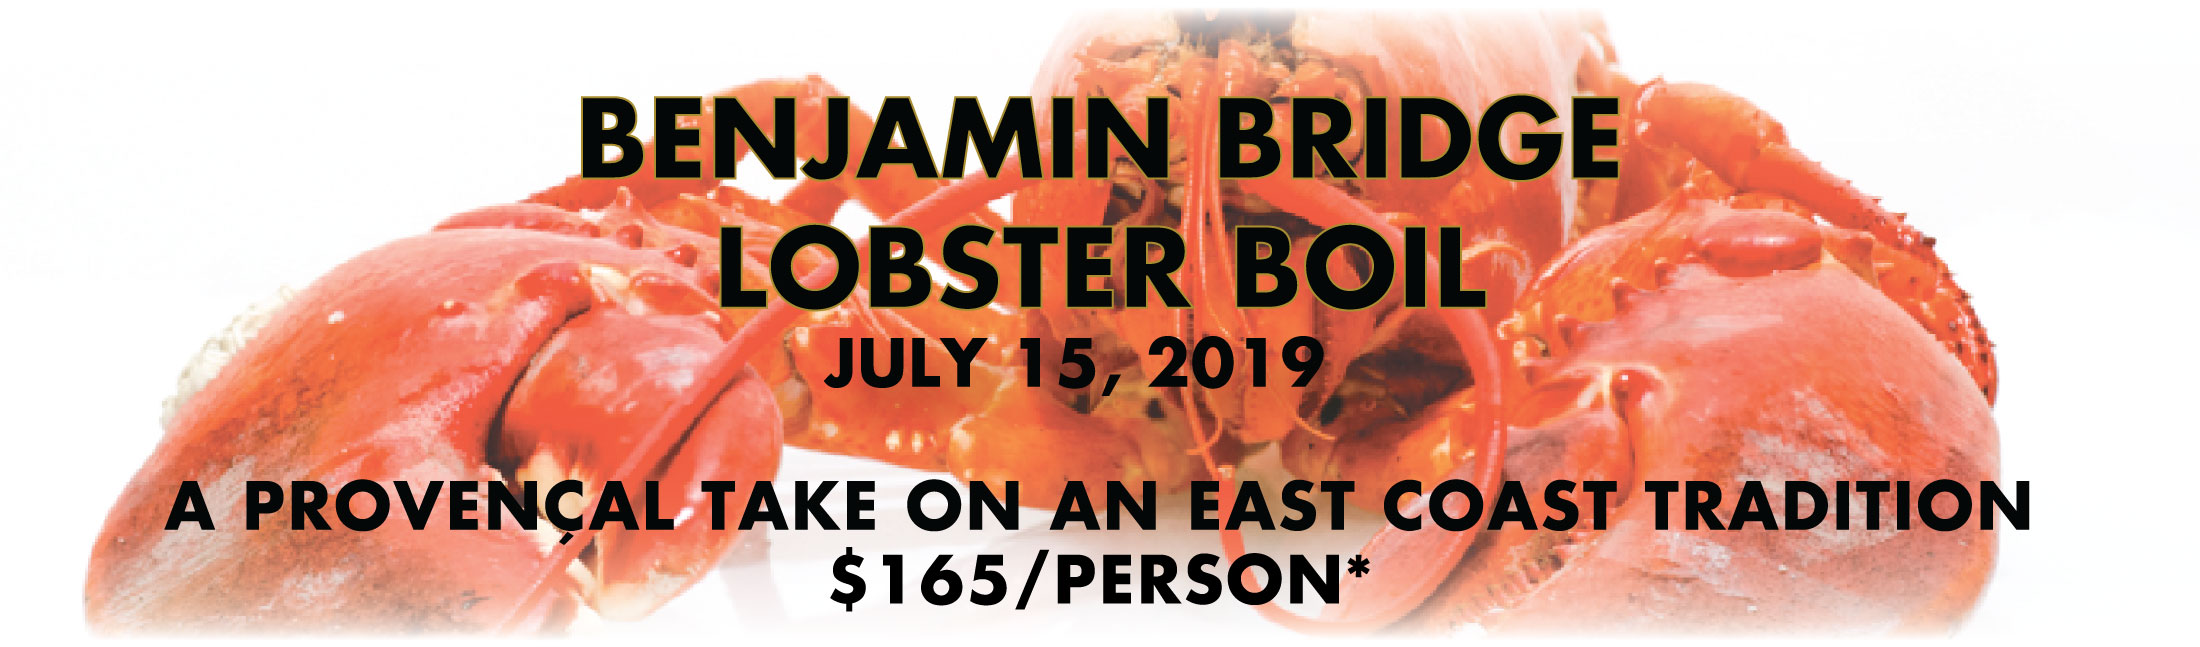 Benjamin Bridge Lobster Boil